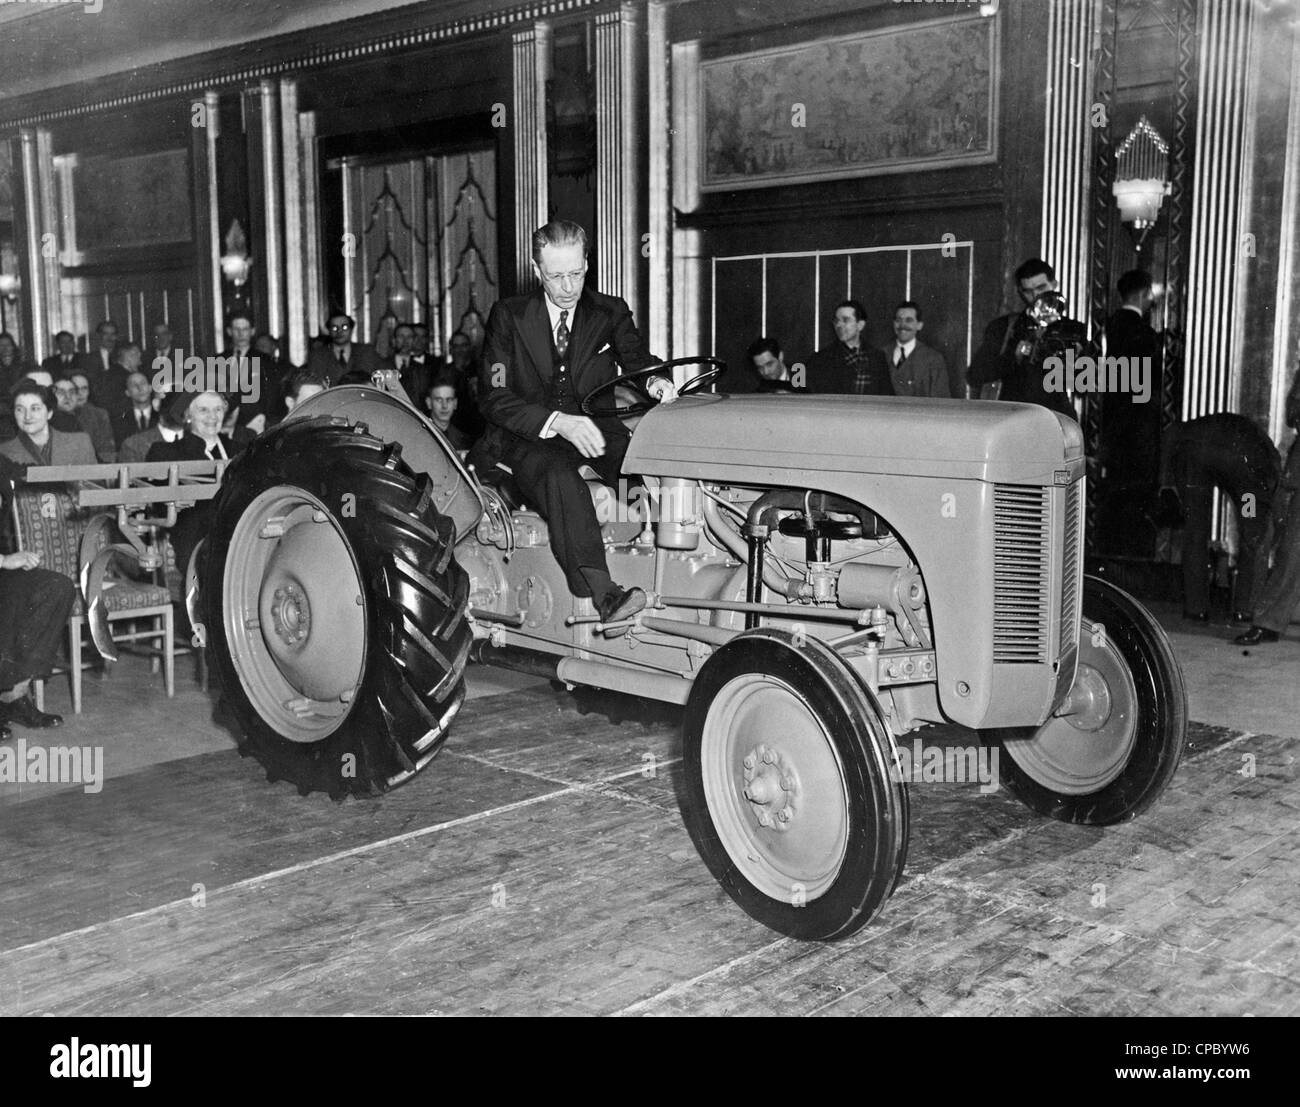 Farming came to Mayfair when Mr Harry Ferguson demonstrated his tractor in a luxurious hotel ballroom. - Stock Image